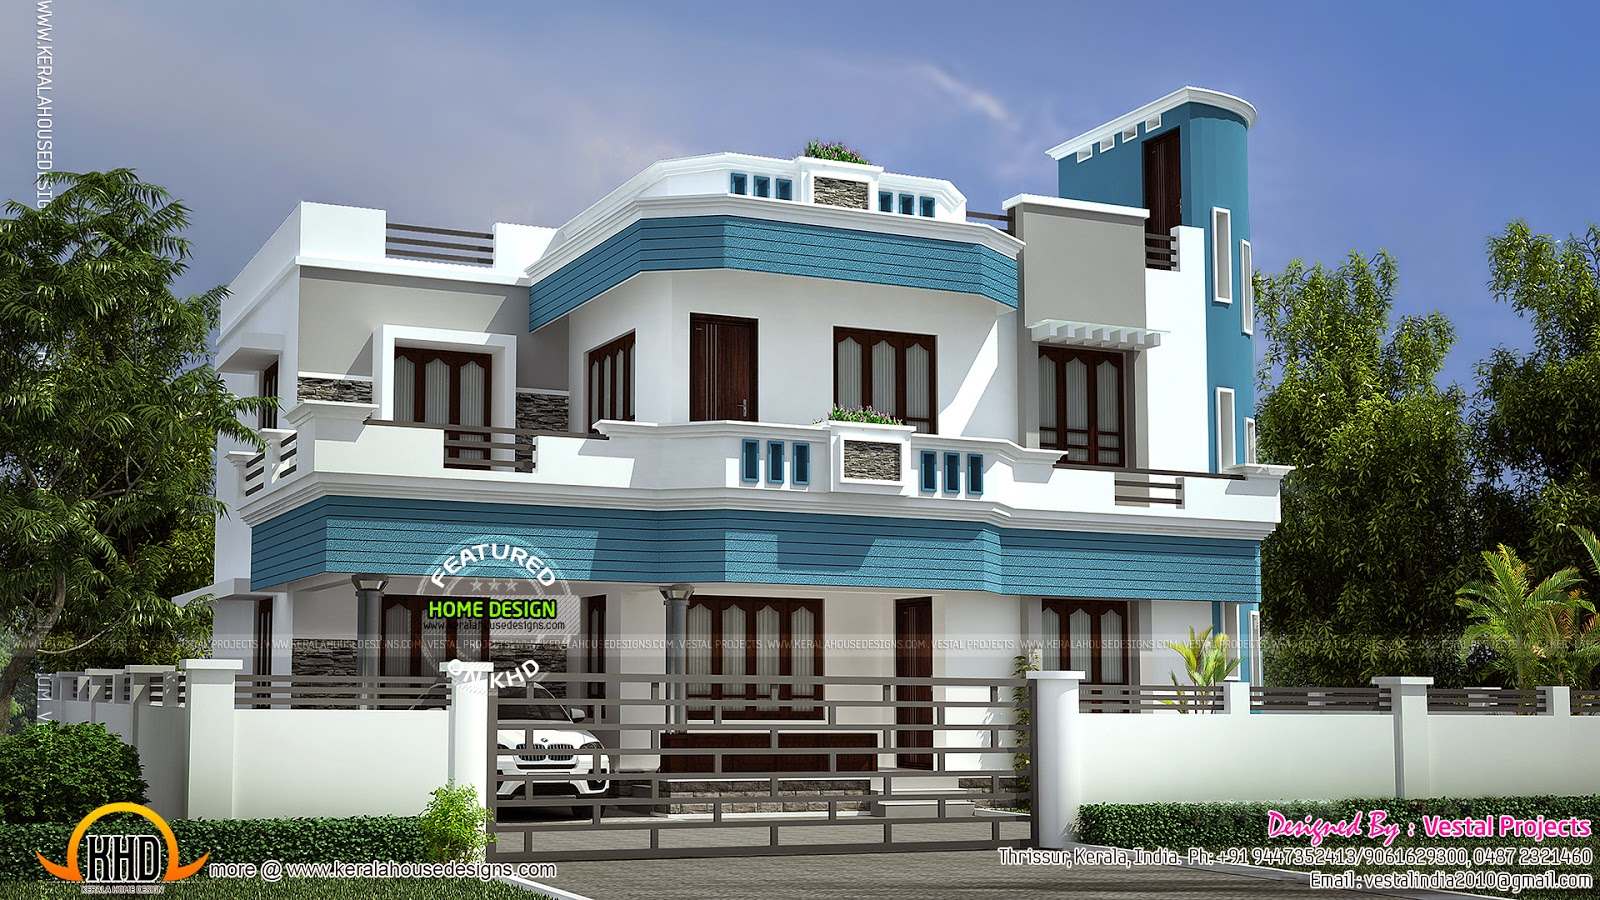 Awesome house by Vestal Projects - Kerala home design and ...